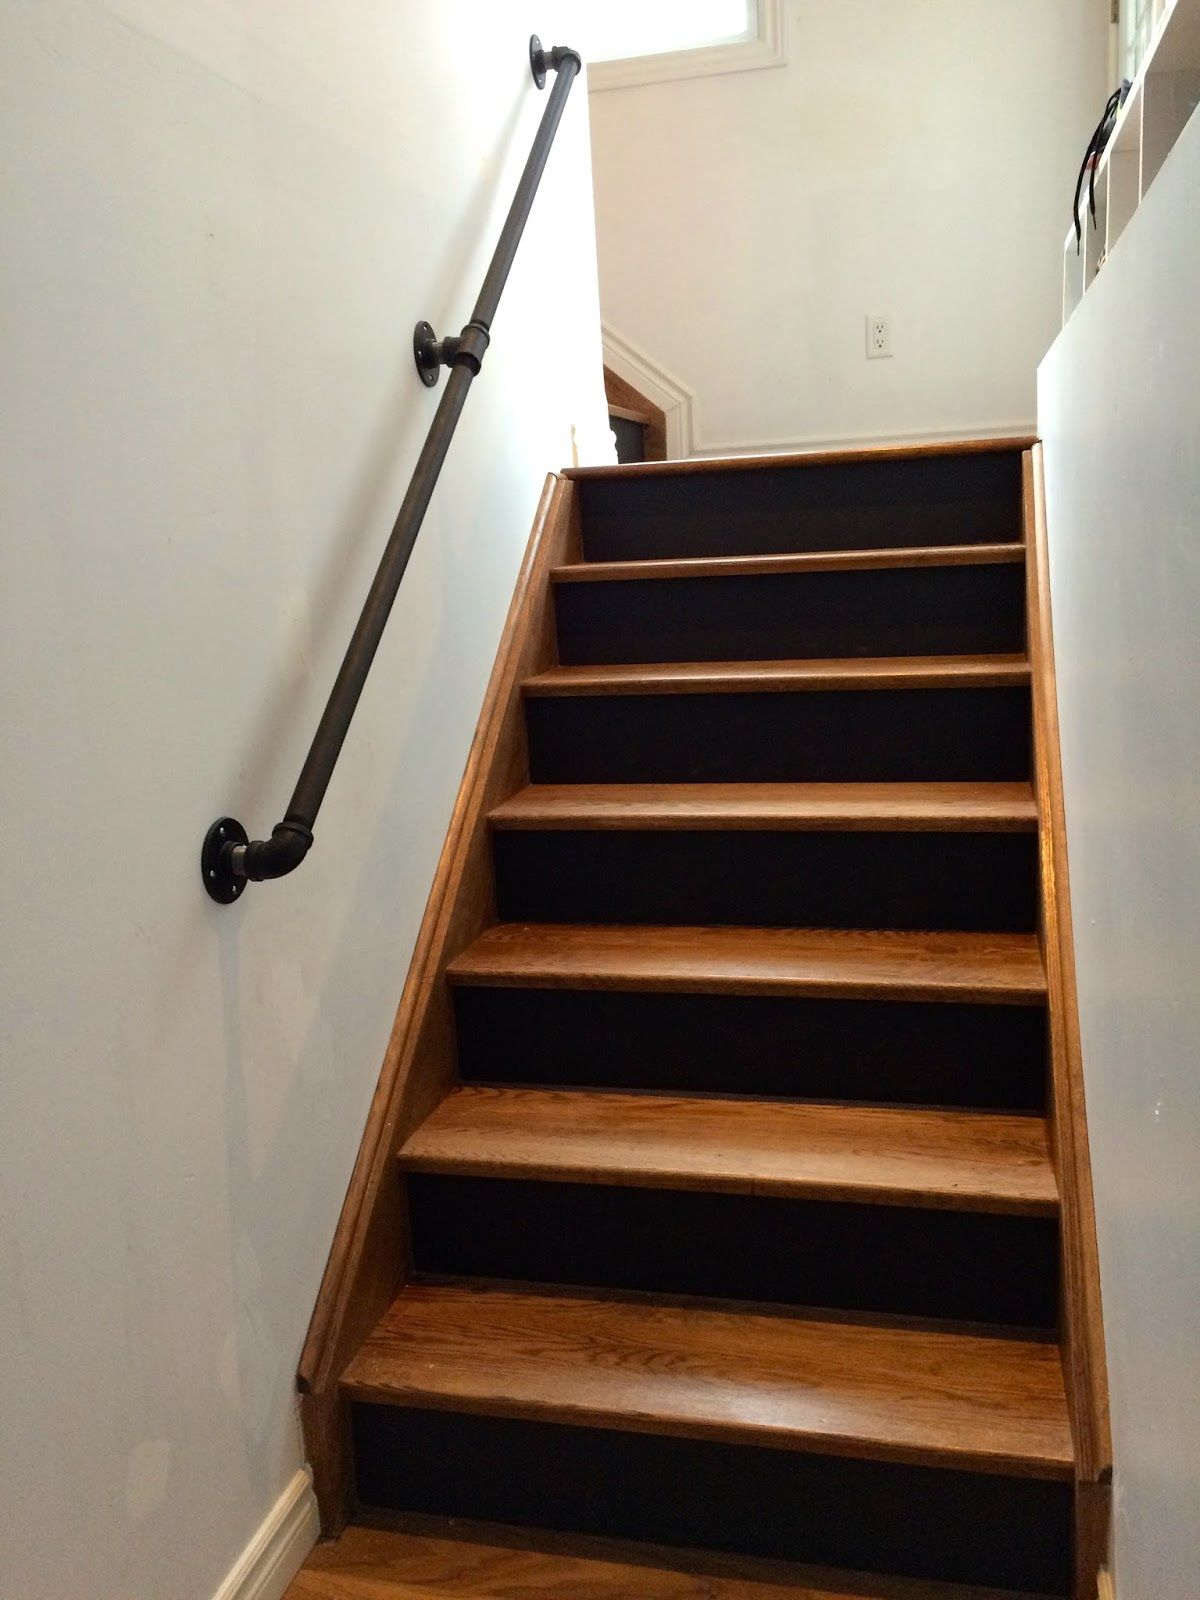 Marvelous Gas Pipe Railing, Walnut Stairs, Black Risers More